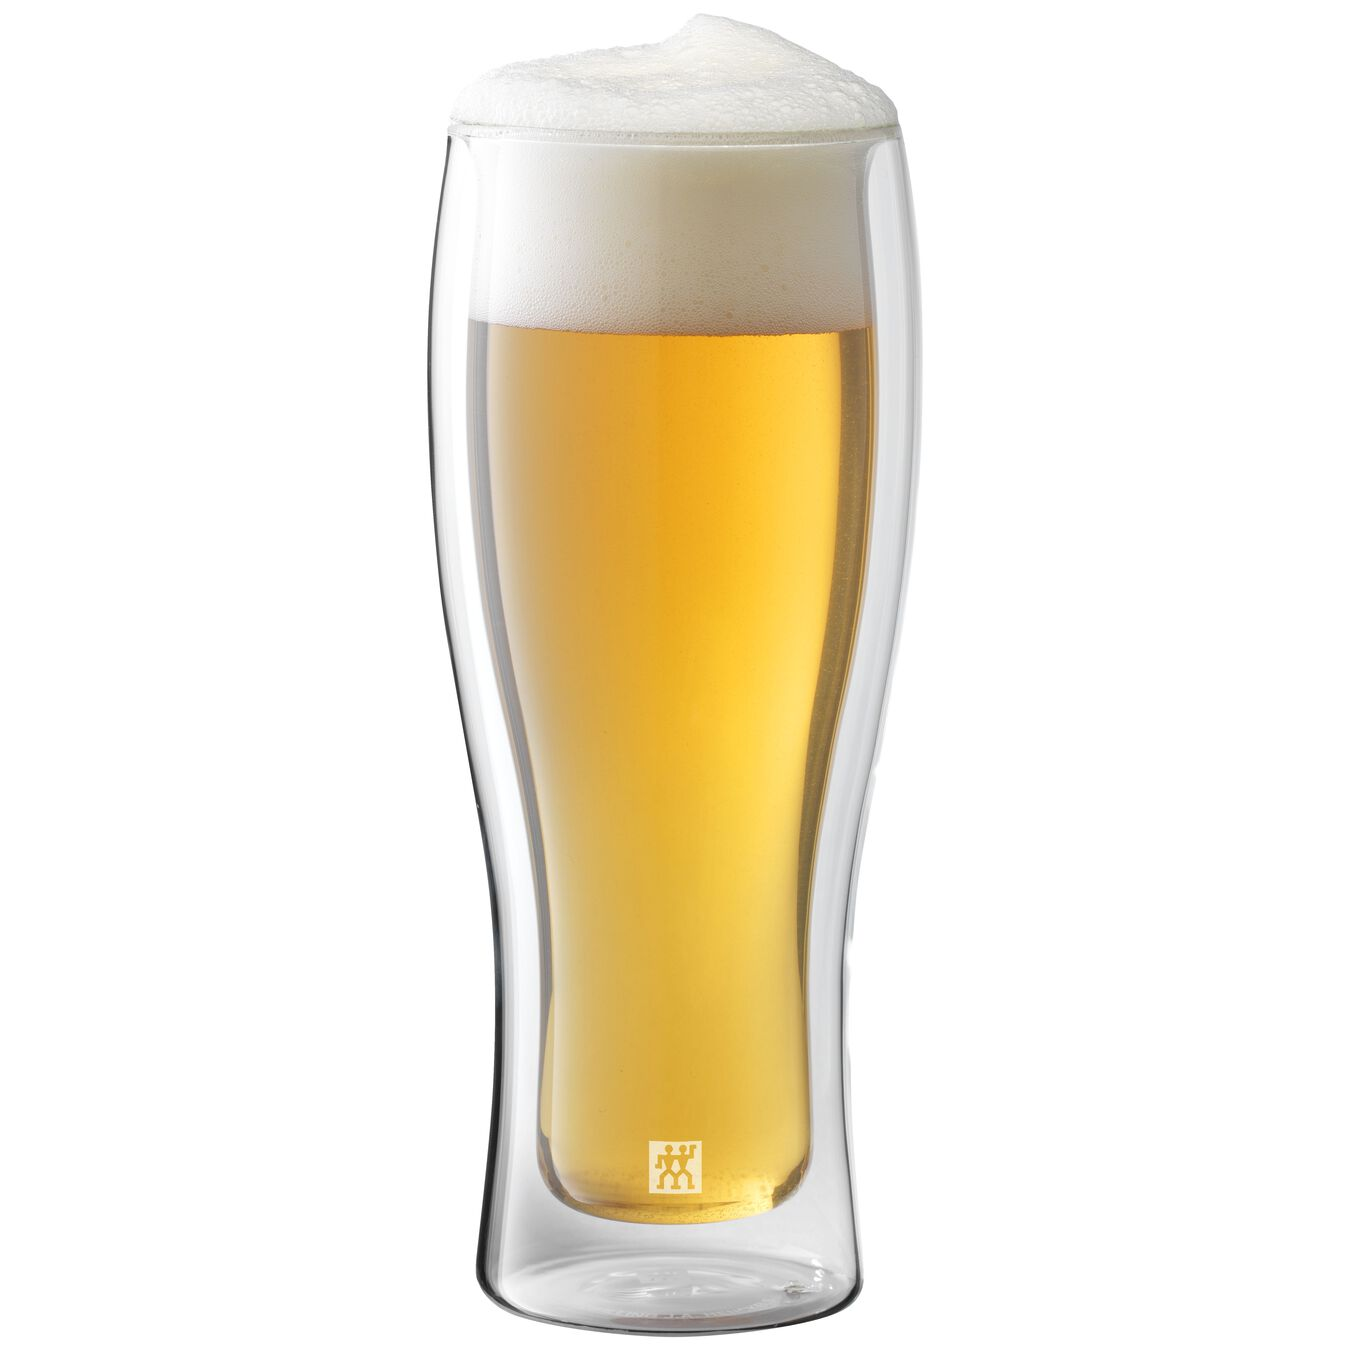 Bier Glas, 2-er Set 400 ml,,large 2